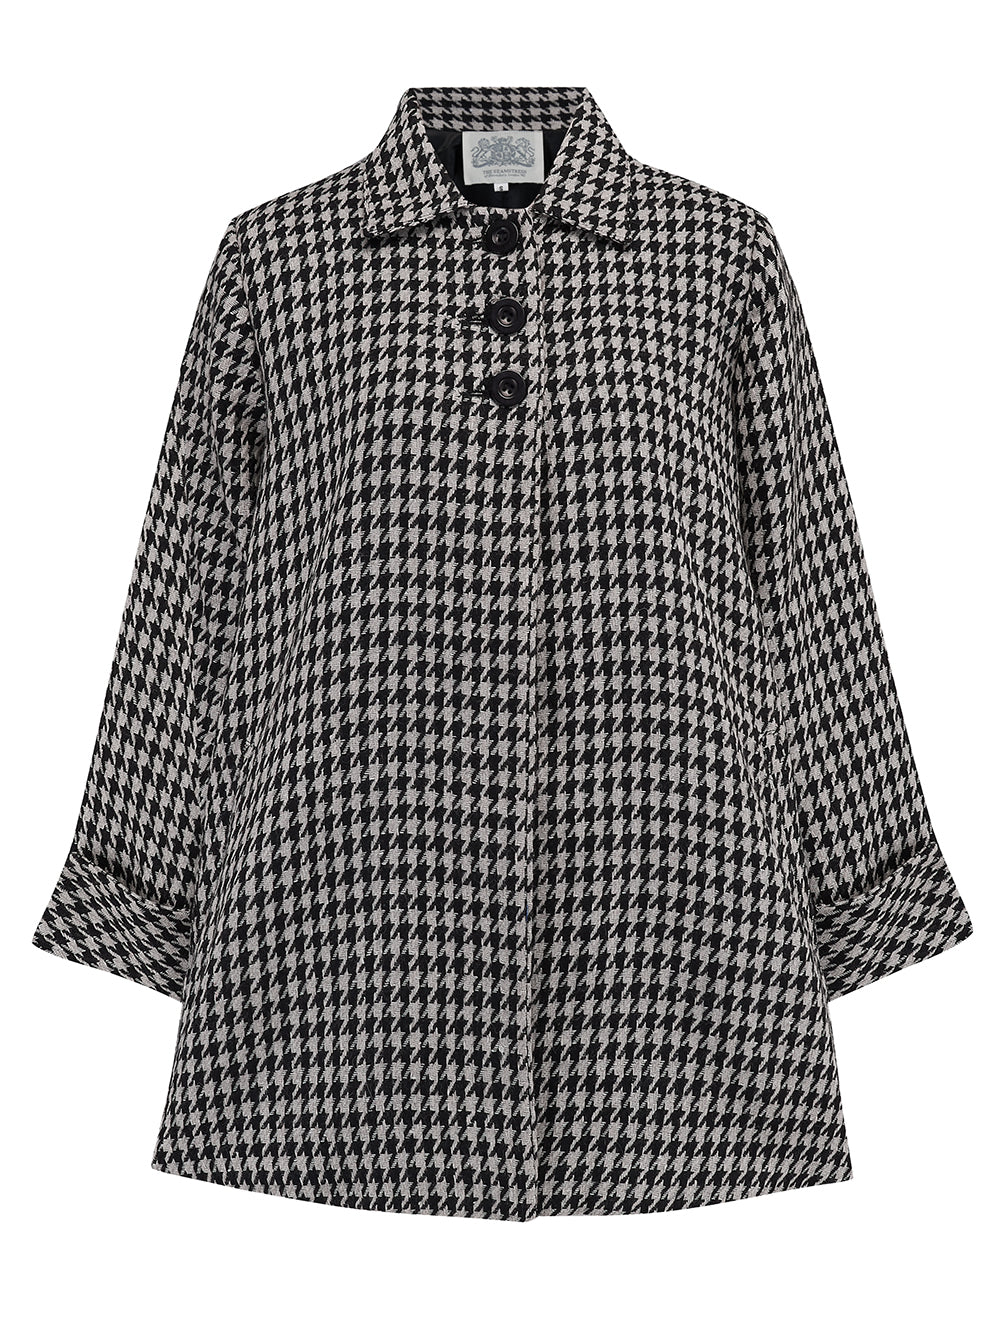 1940s Coats & Jackets Fashion History Swing Jacket in Houndstooth Vintage 1940s Cape Style Inspired Over Coat £125.00 AT vintagedancer.com